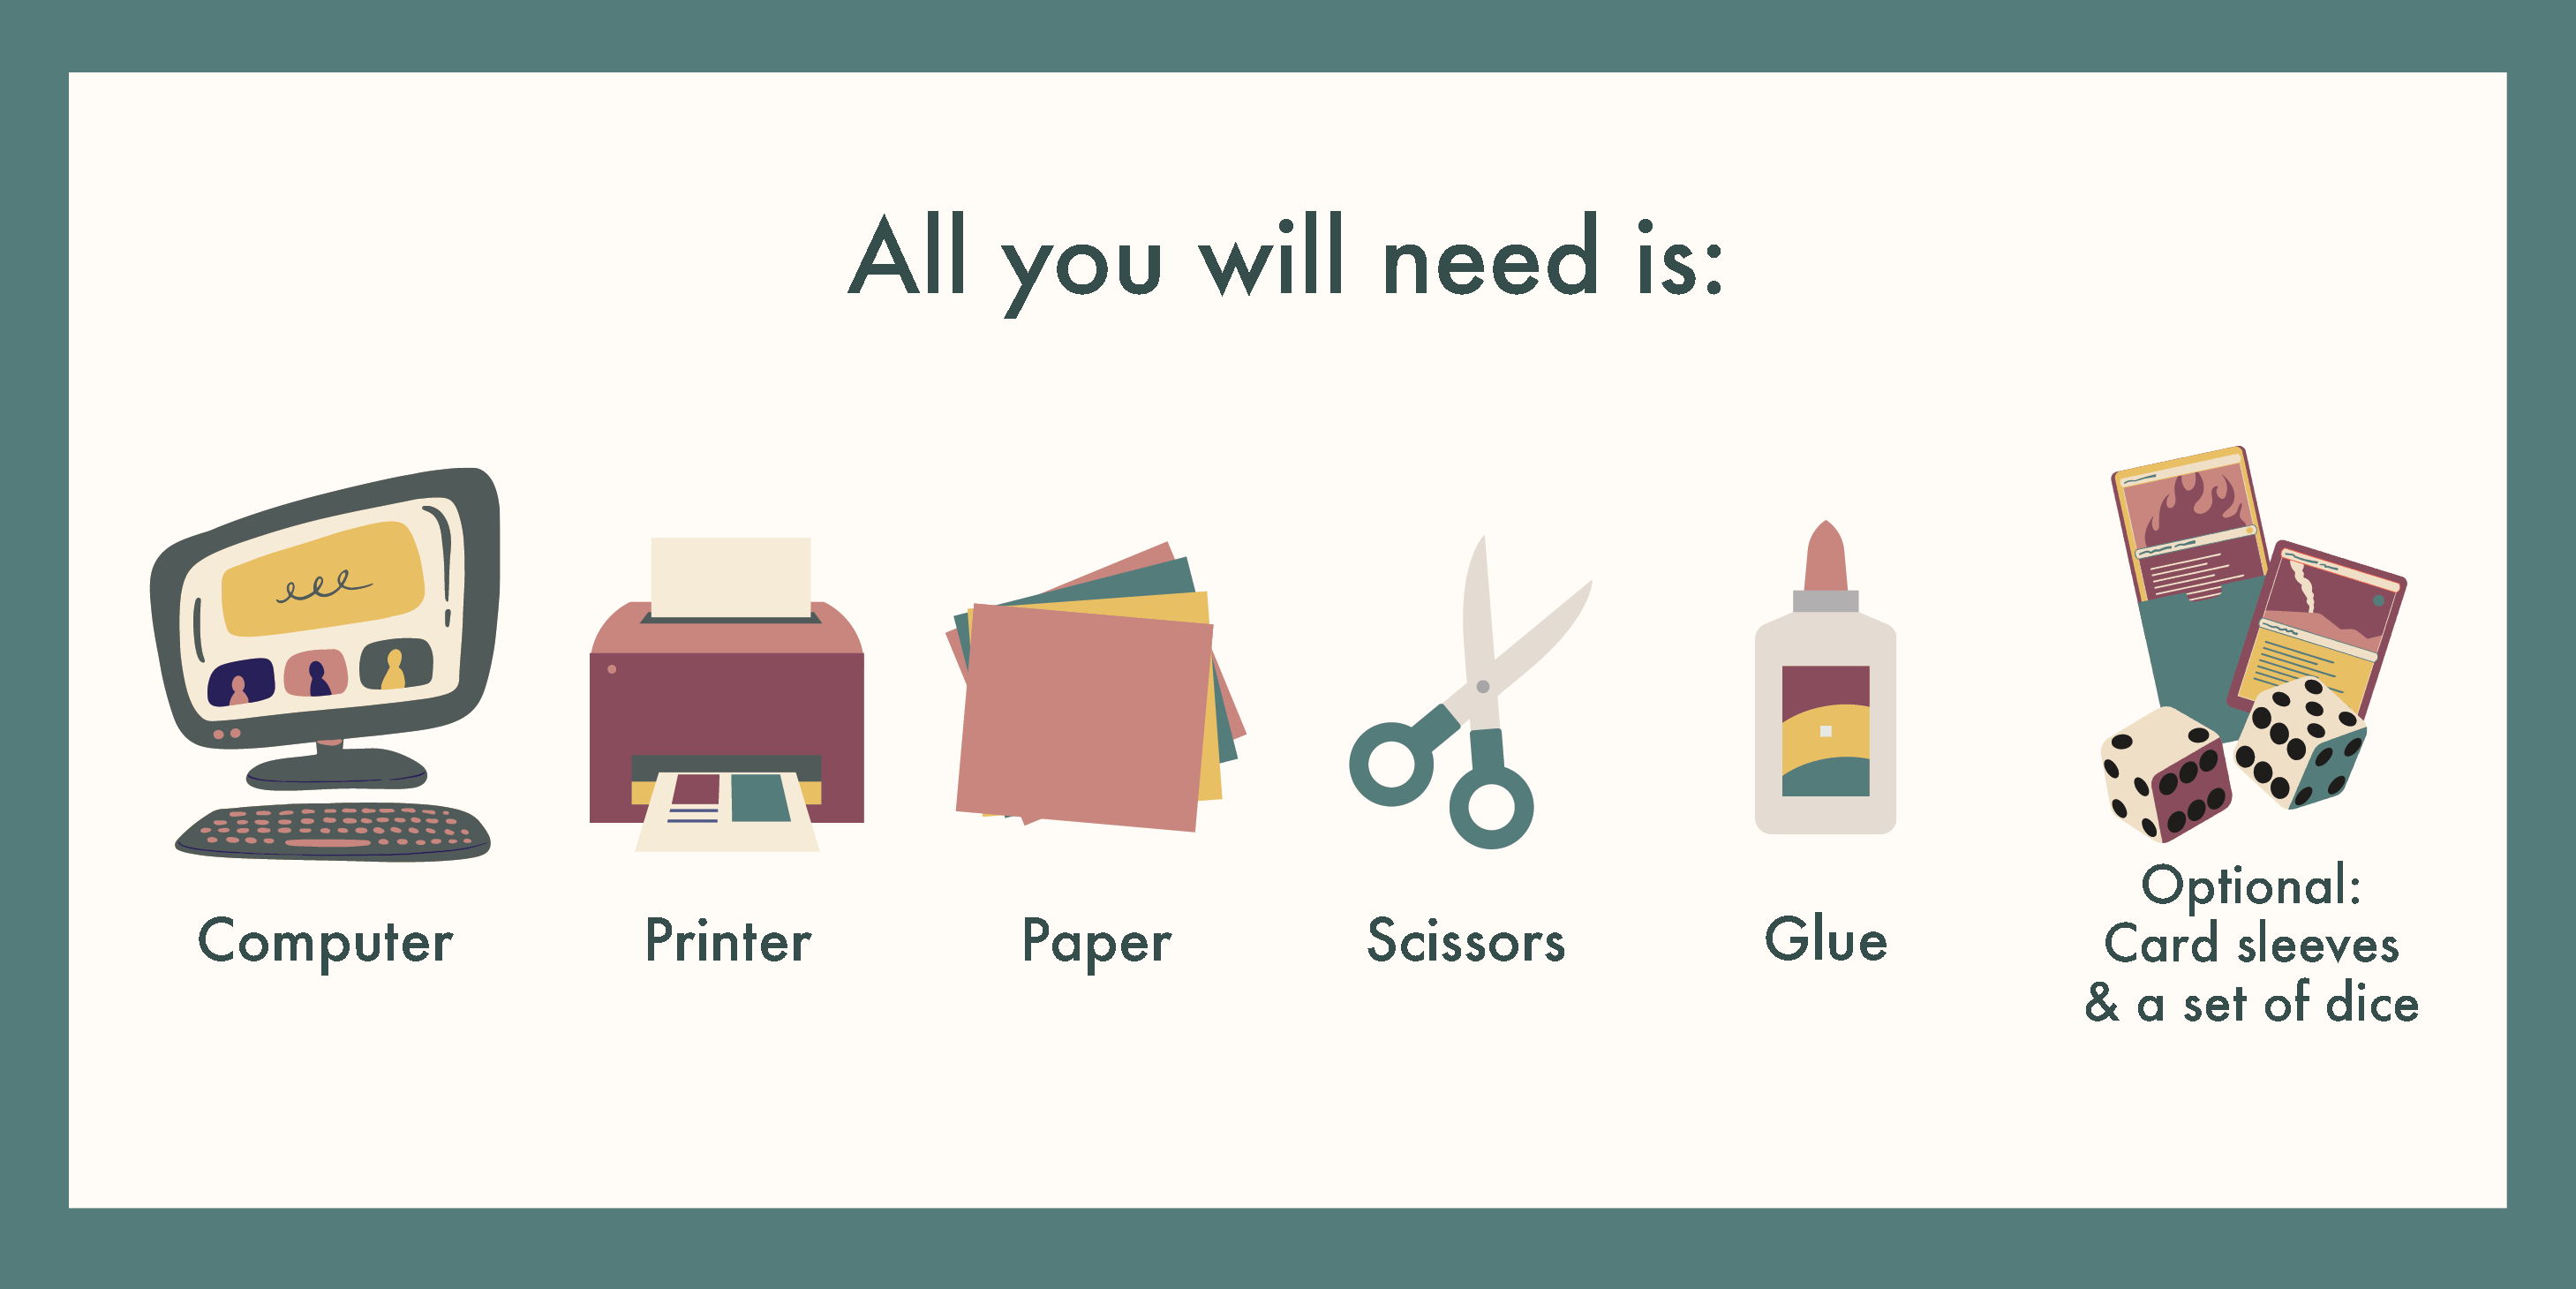 All you will need is: a computer and a printer, paper, scissors, glue, cardboard, [optional] Card sleeves and a set of dice (You can get these from a local boardgame store!)